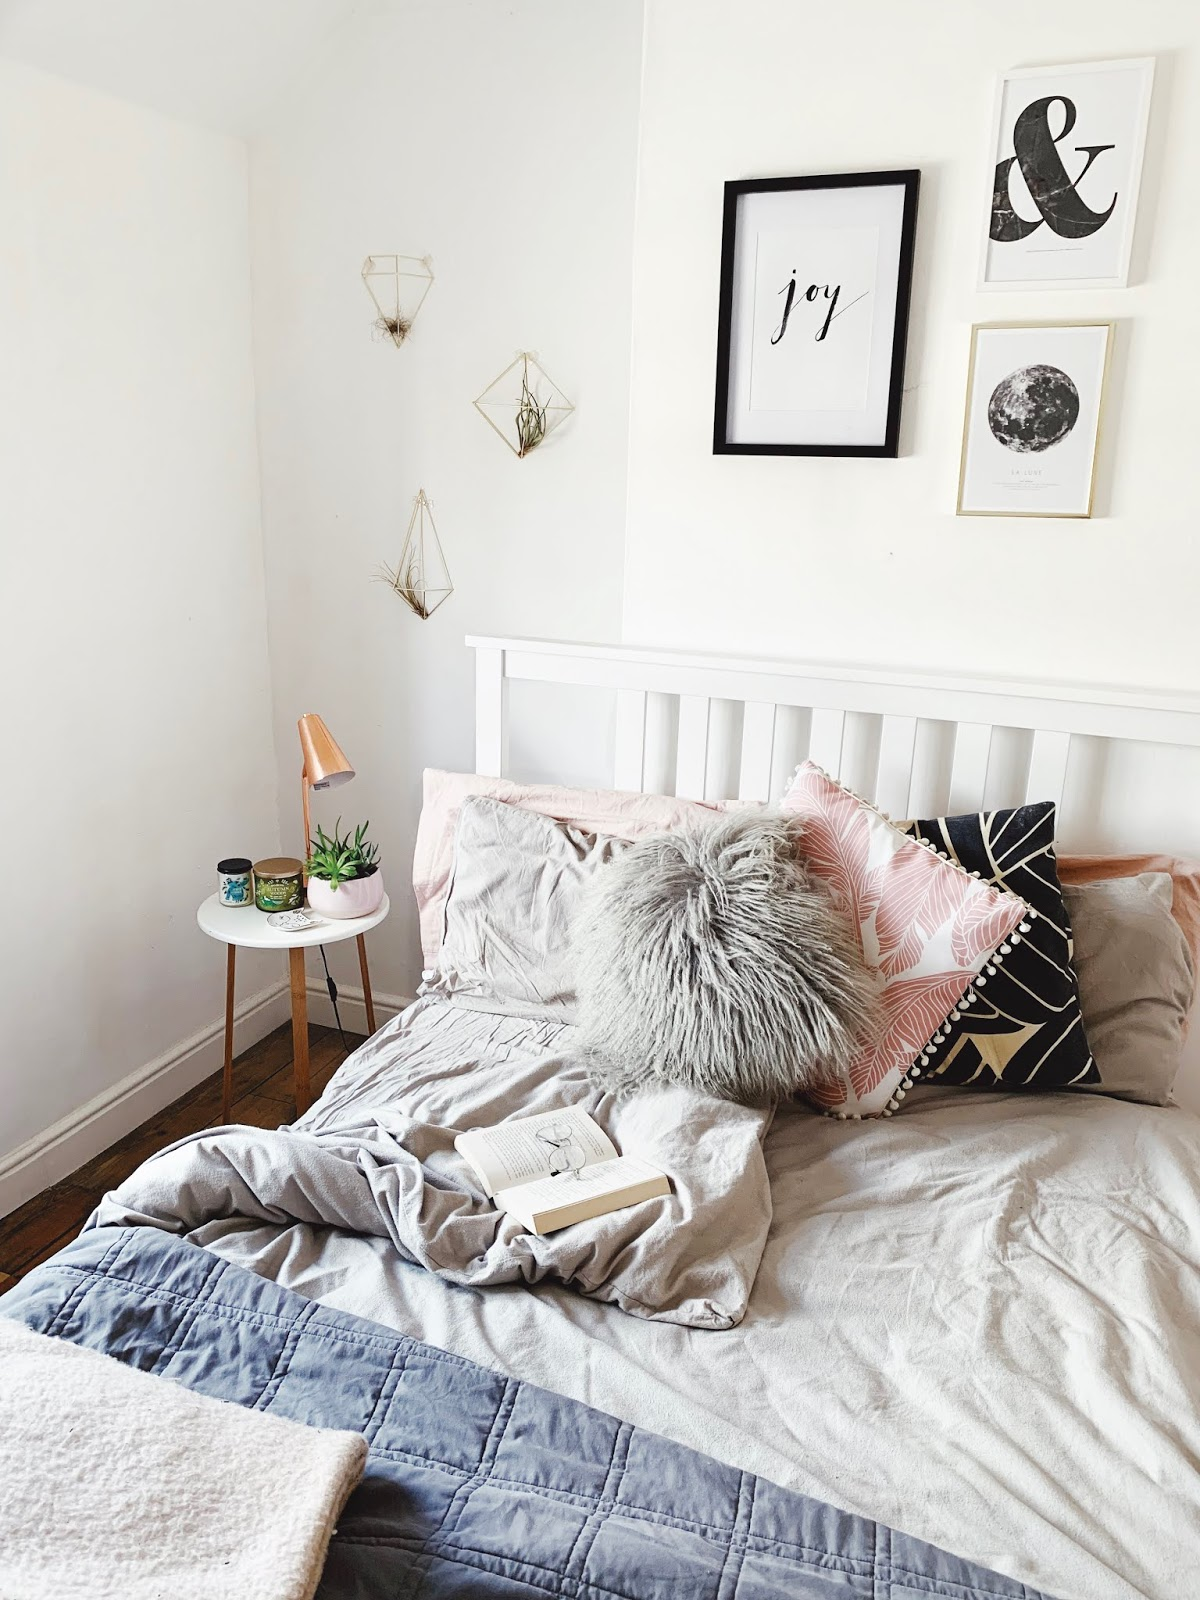 Favourite Ways To Unwind + De Stress